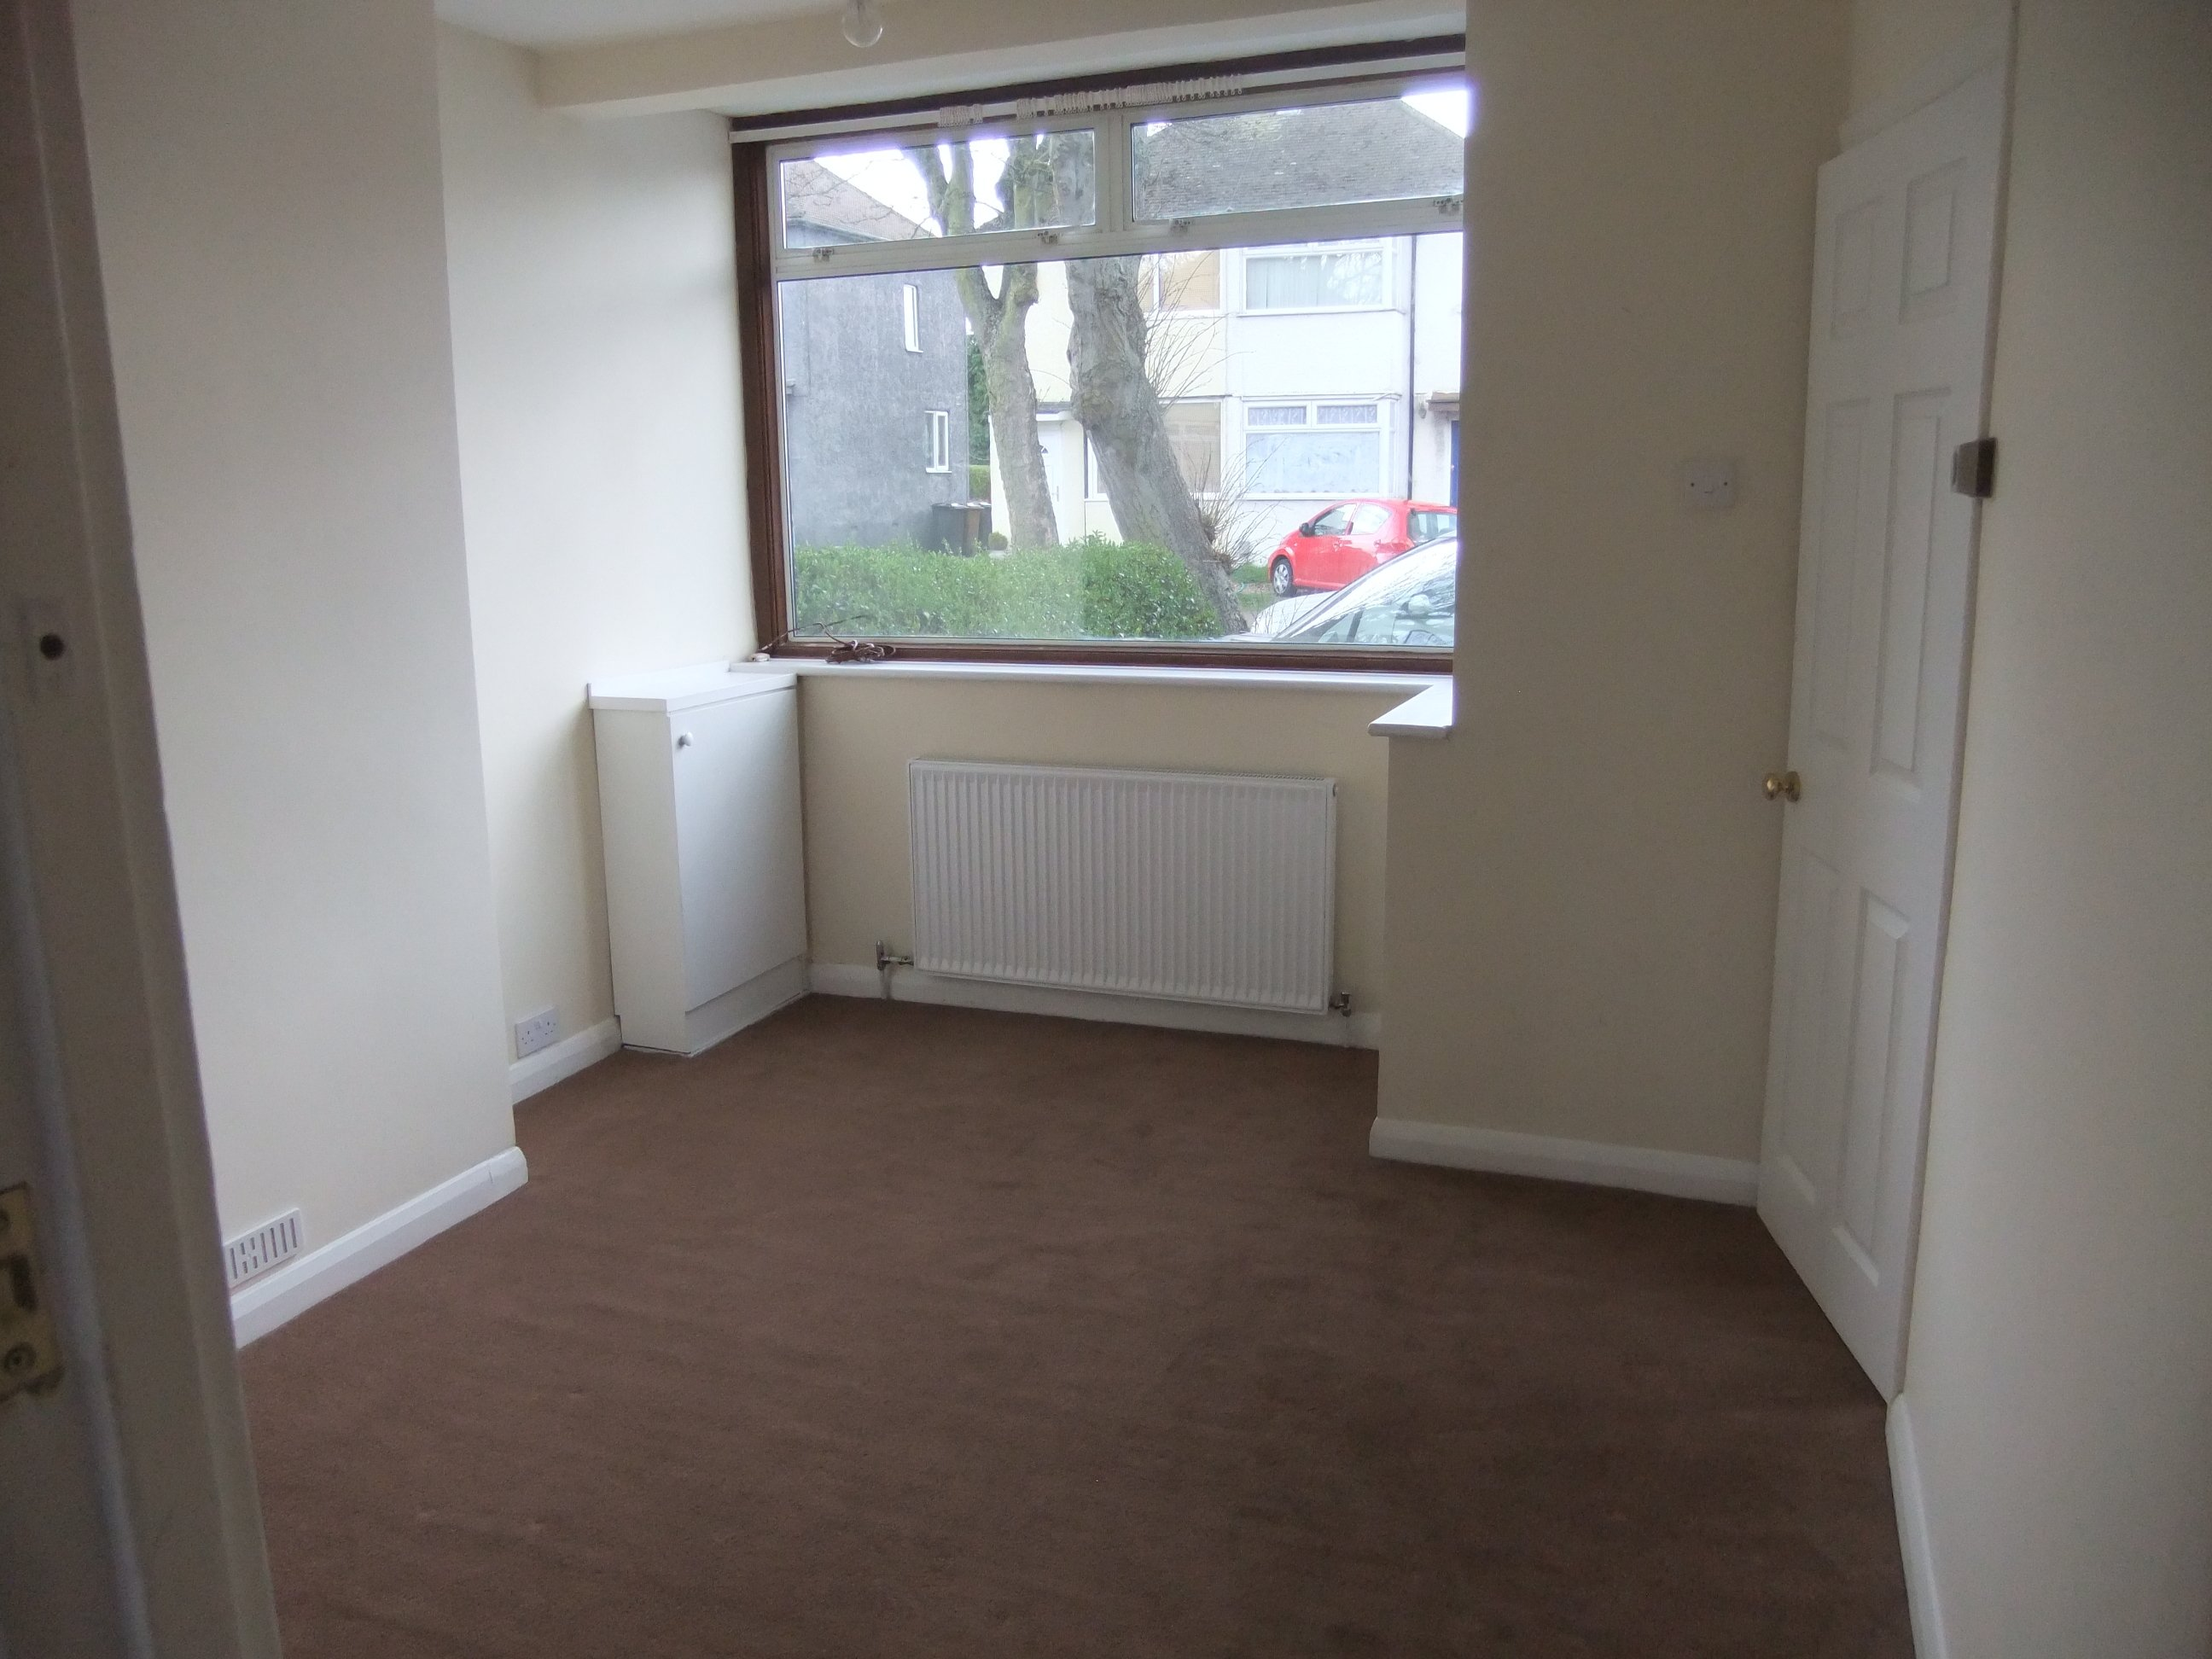 2 bed house - semi-detached to rent - fourth avenue, luton, lu3 3bs